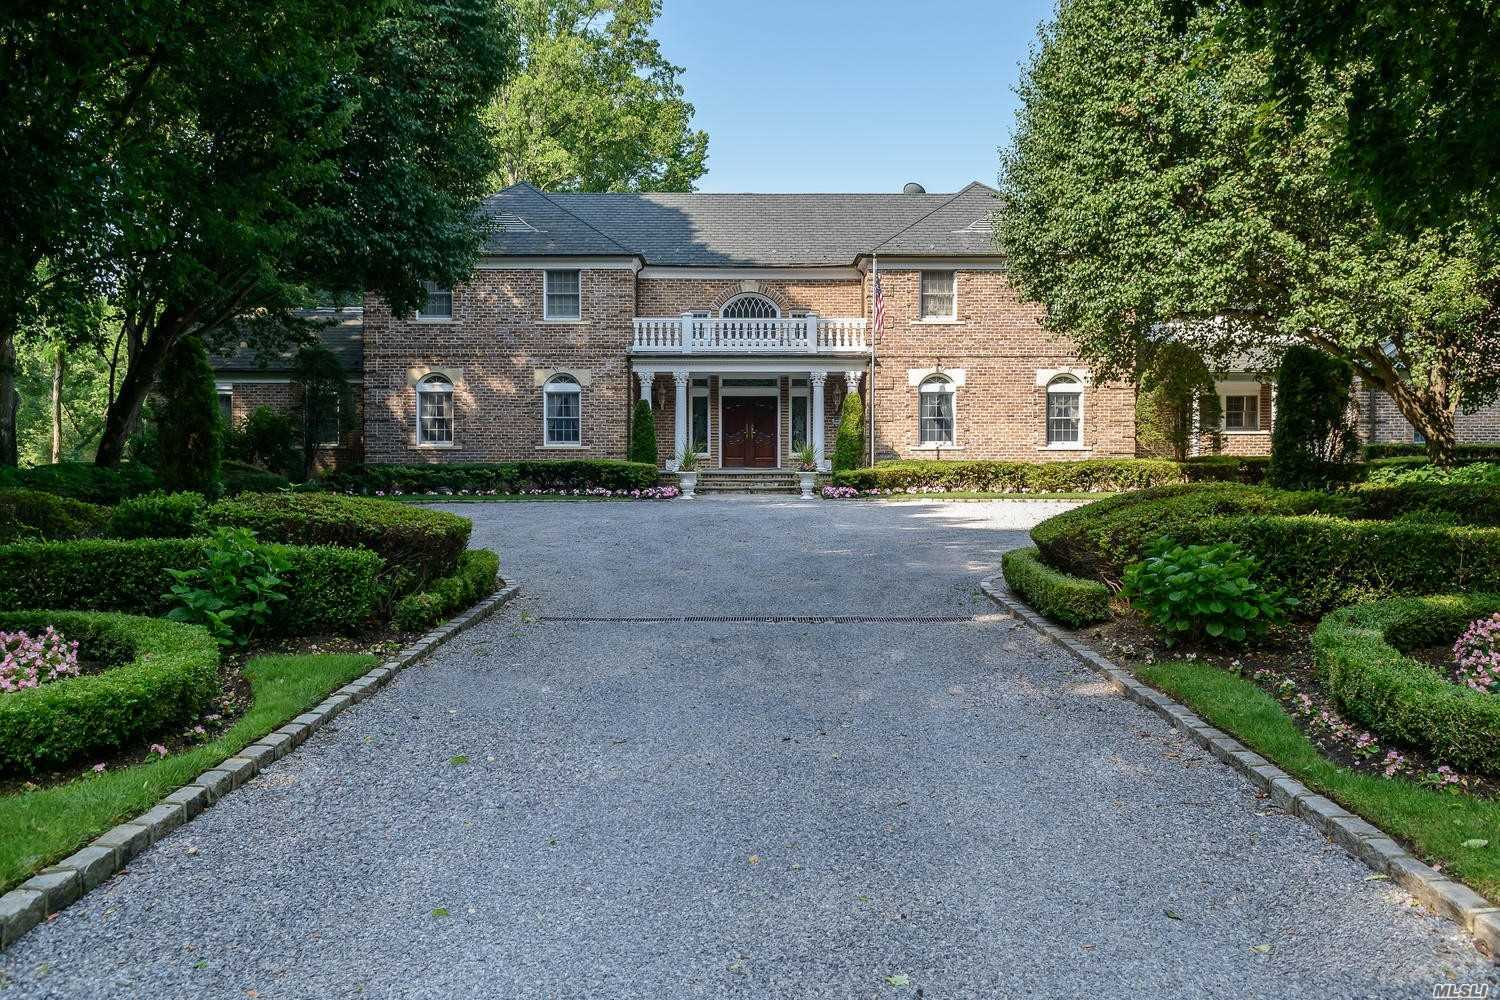 True Estate Located On 10+/- Acres With Rolling Lawns, Mature Trees And Magnificent Landscaping. Very Private. Beautiful Pool And Surround. Wonderful Flowing Pond. A Refuge Haven From The World For Birds. Taxes Being Grieved. Generator.